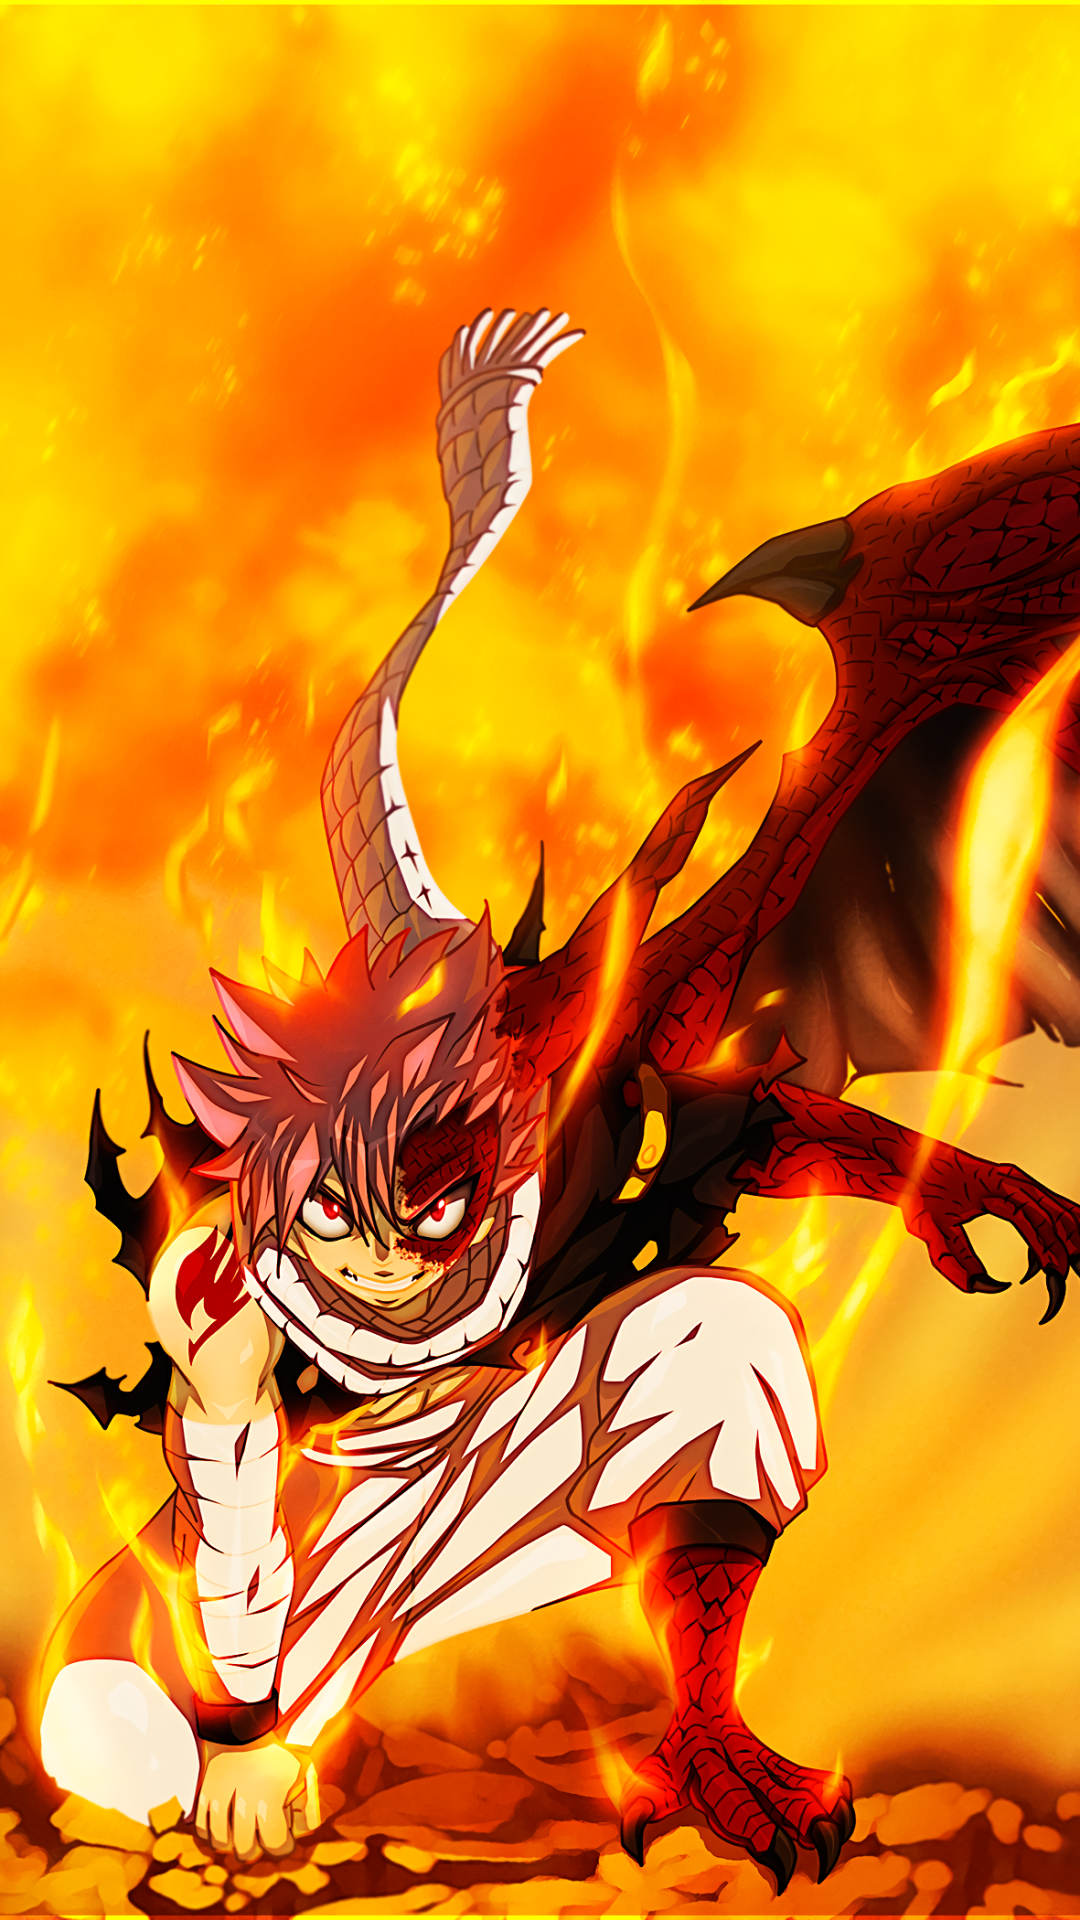 Fairy Tail Wallpaper Iphone 4 - Fairy Tail Wallpaper Iphone , HD Wallpaper & Backgrounds